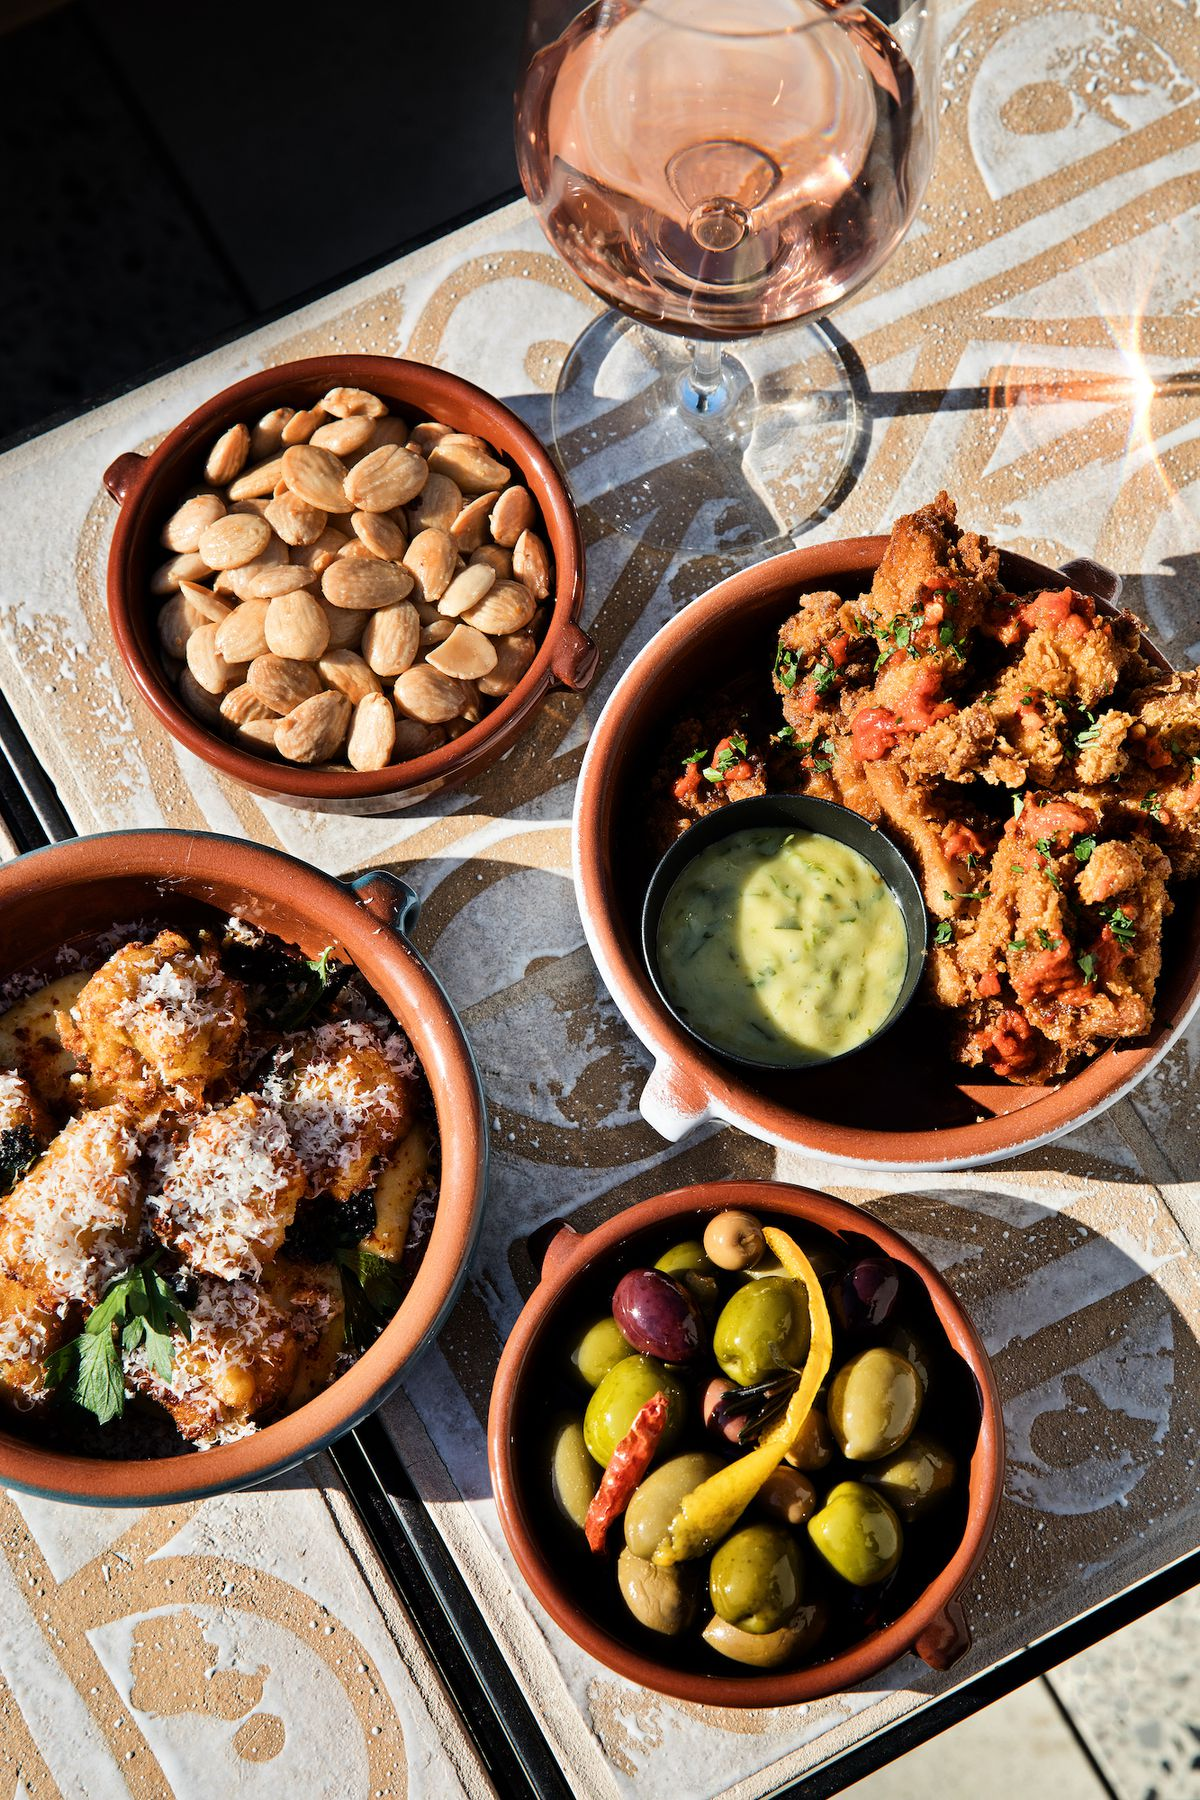 A tilted overhead shot of bowls of fried chicken, almonds, and more on a sunny table.